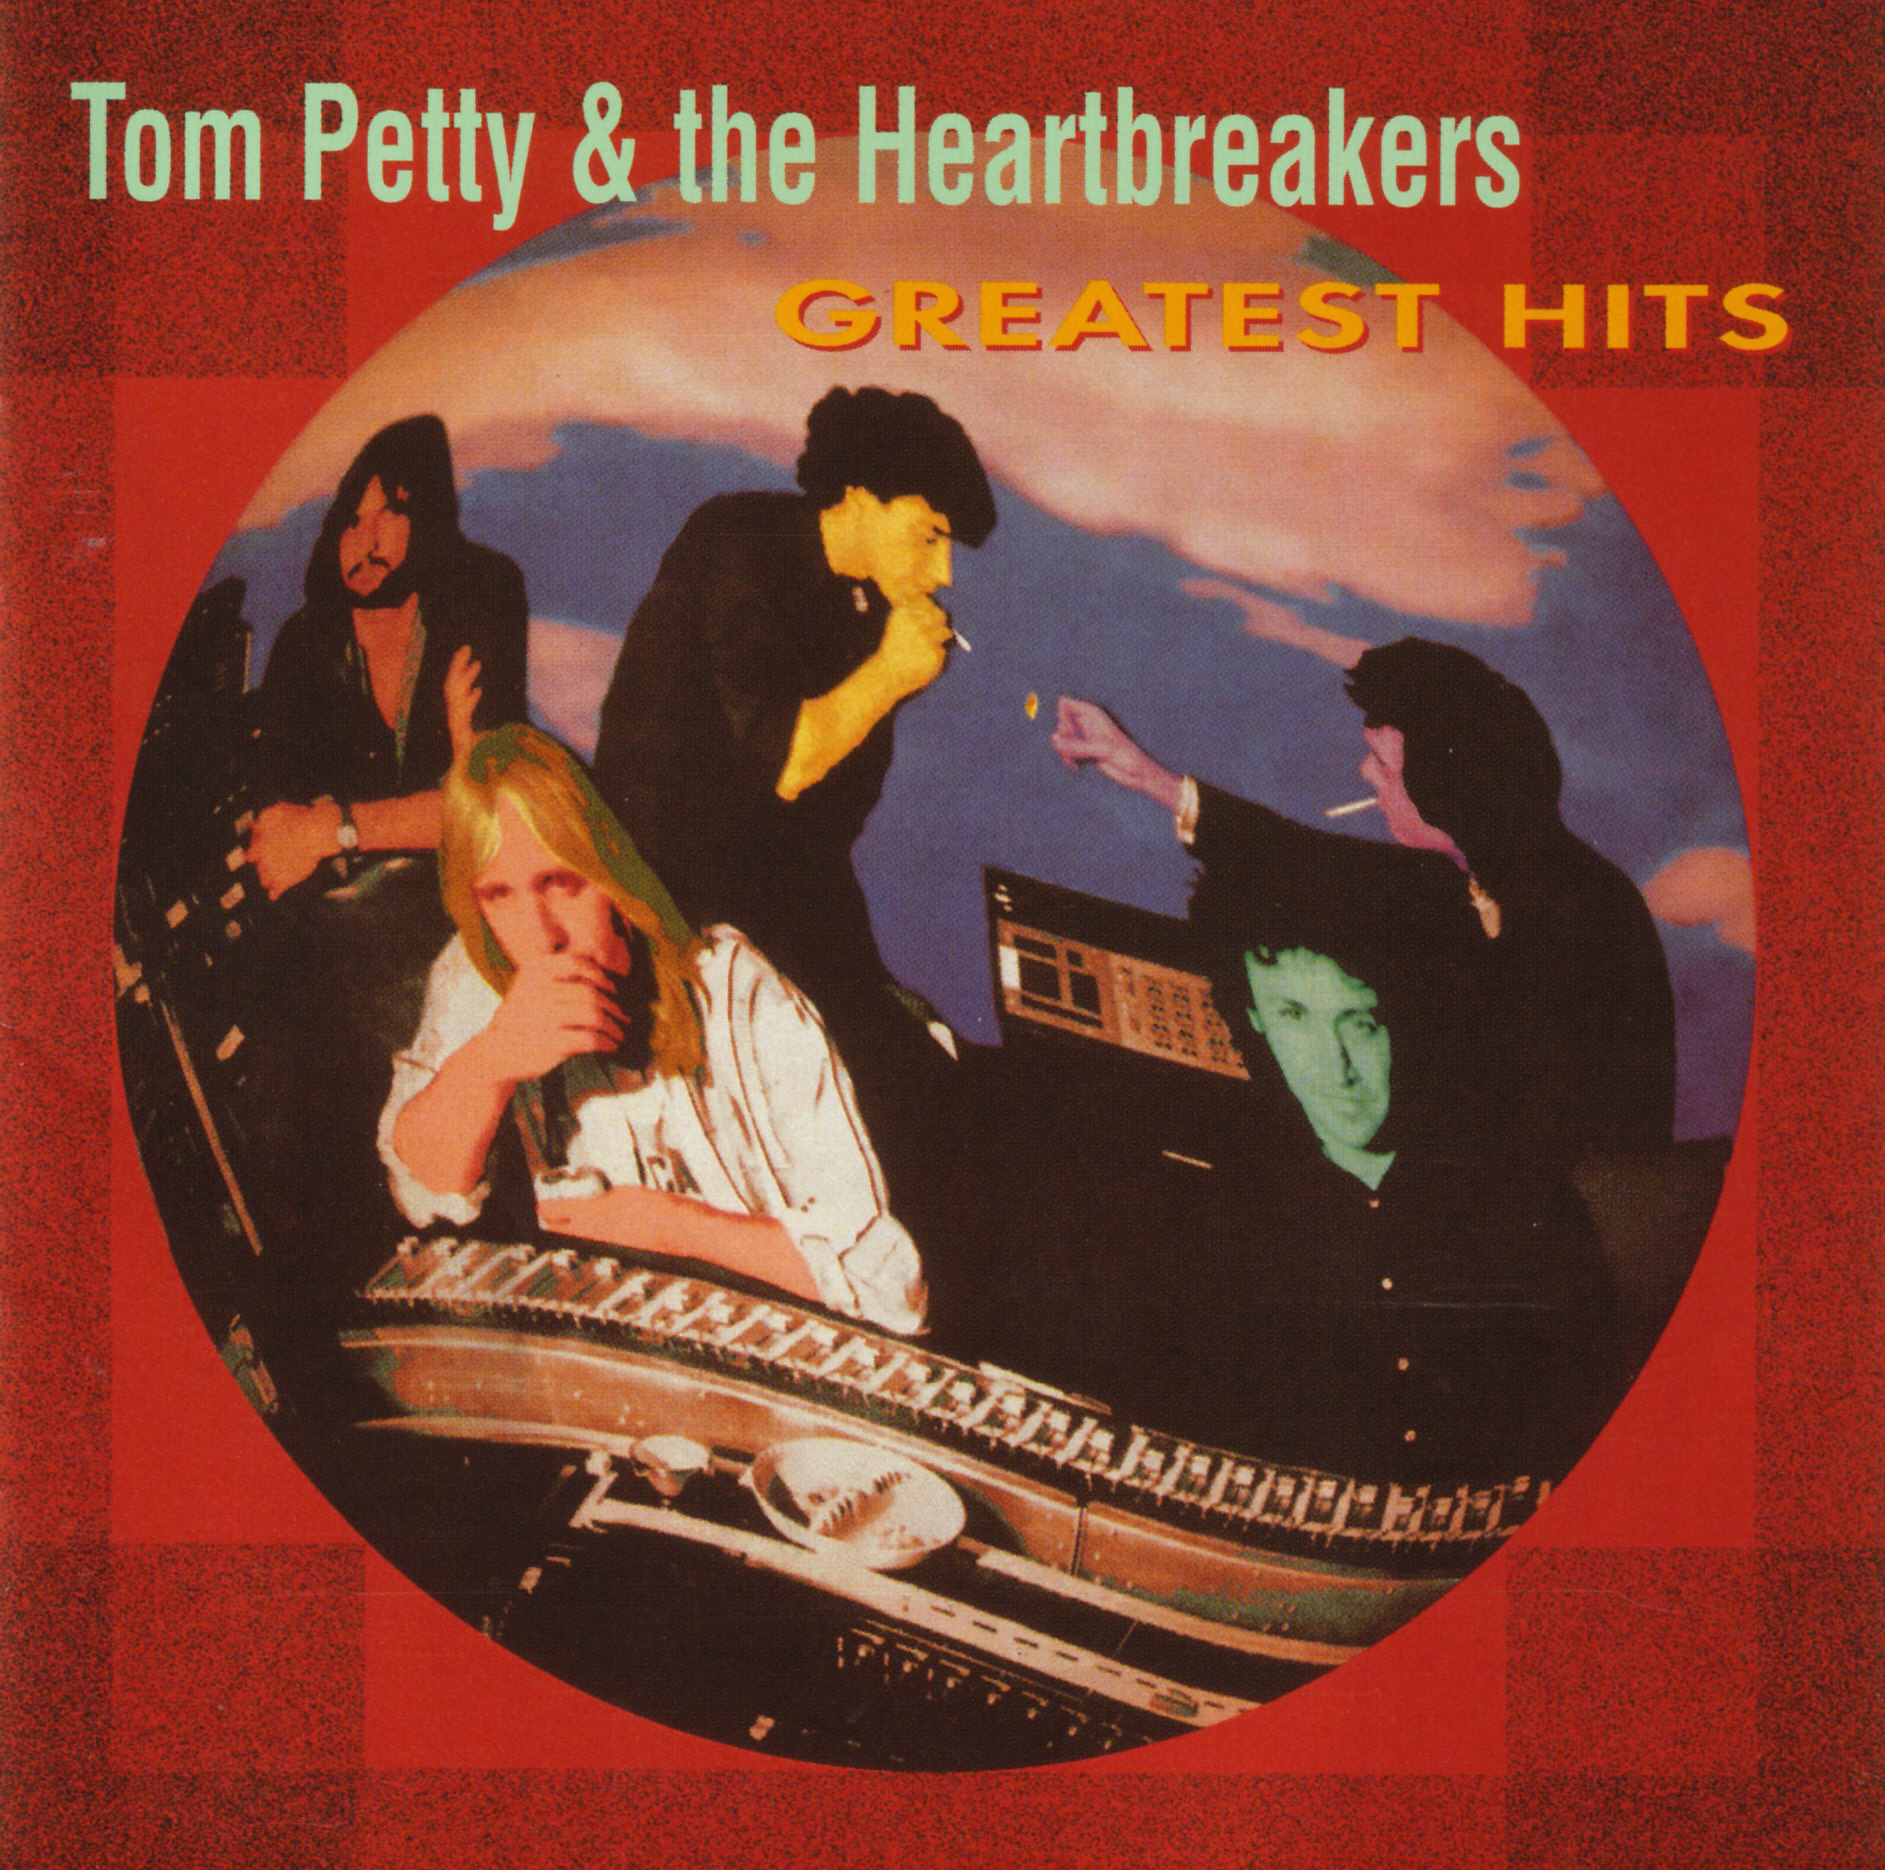 Tom Petty & the Heartbreakers Greatest Hits